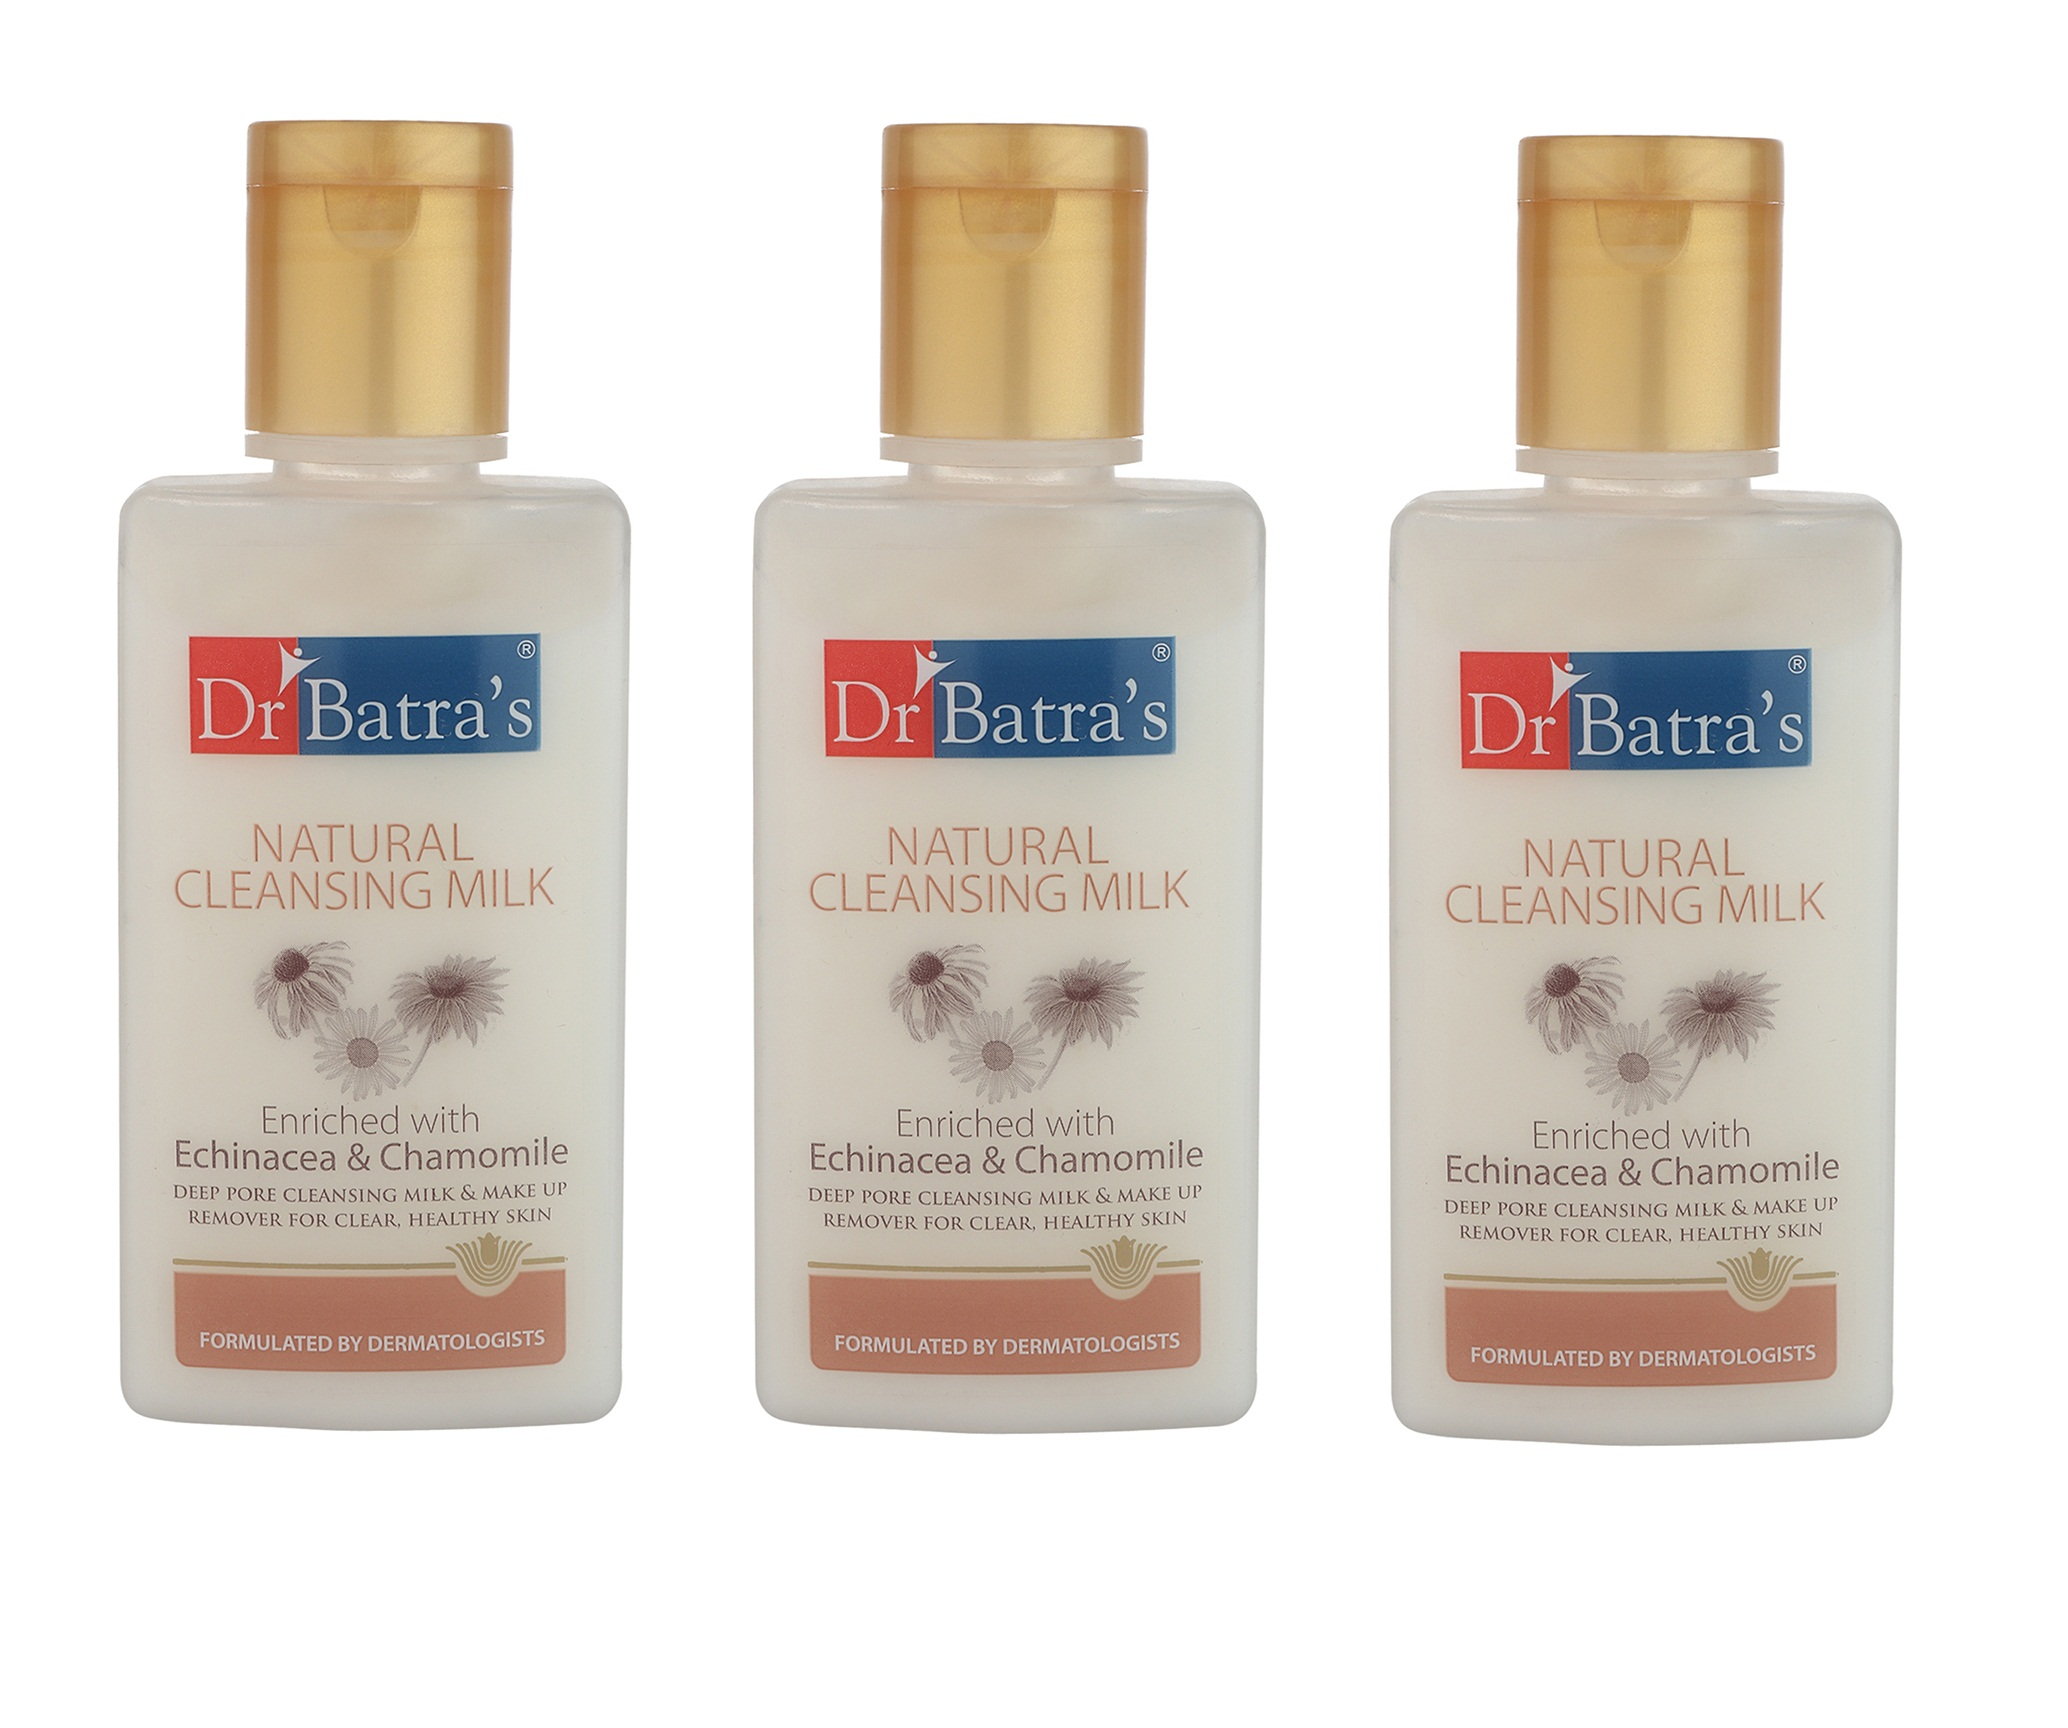 Dr Batra's | Dr Batra's Natural Cleansing Milk Enriched With Echinacea & Chamomile - 100 ml (Pack of 3)